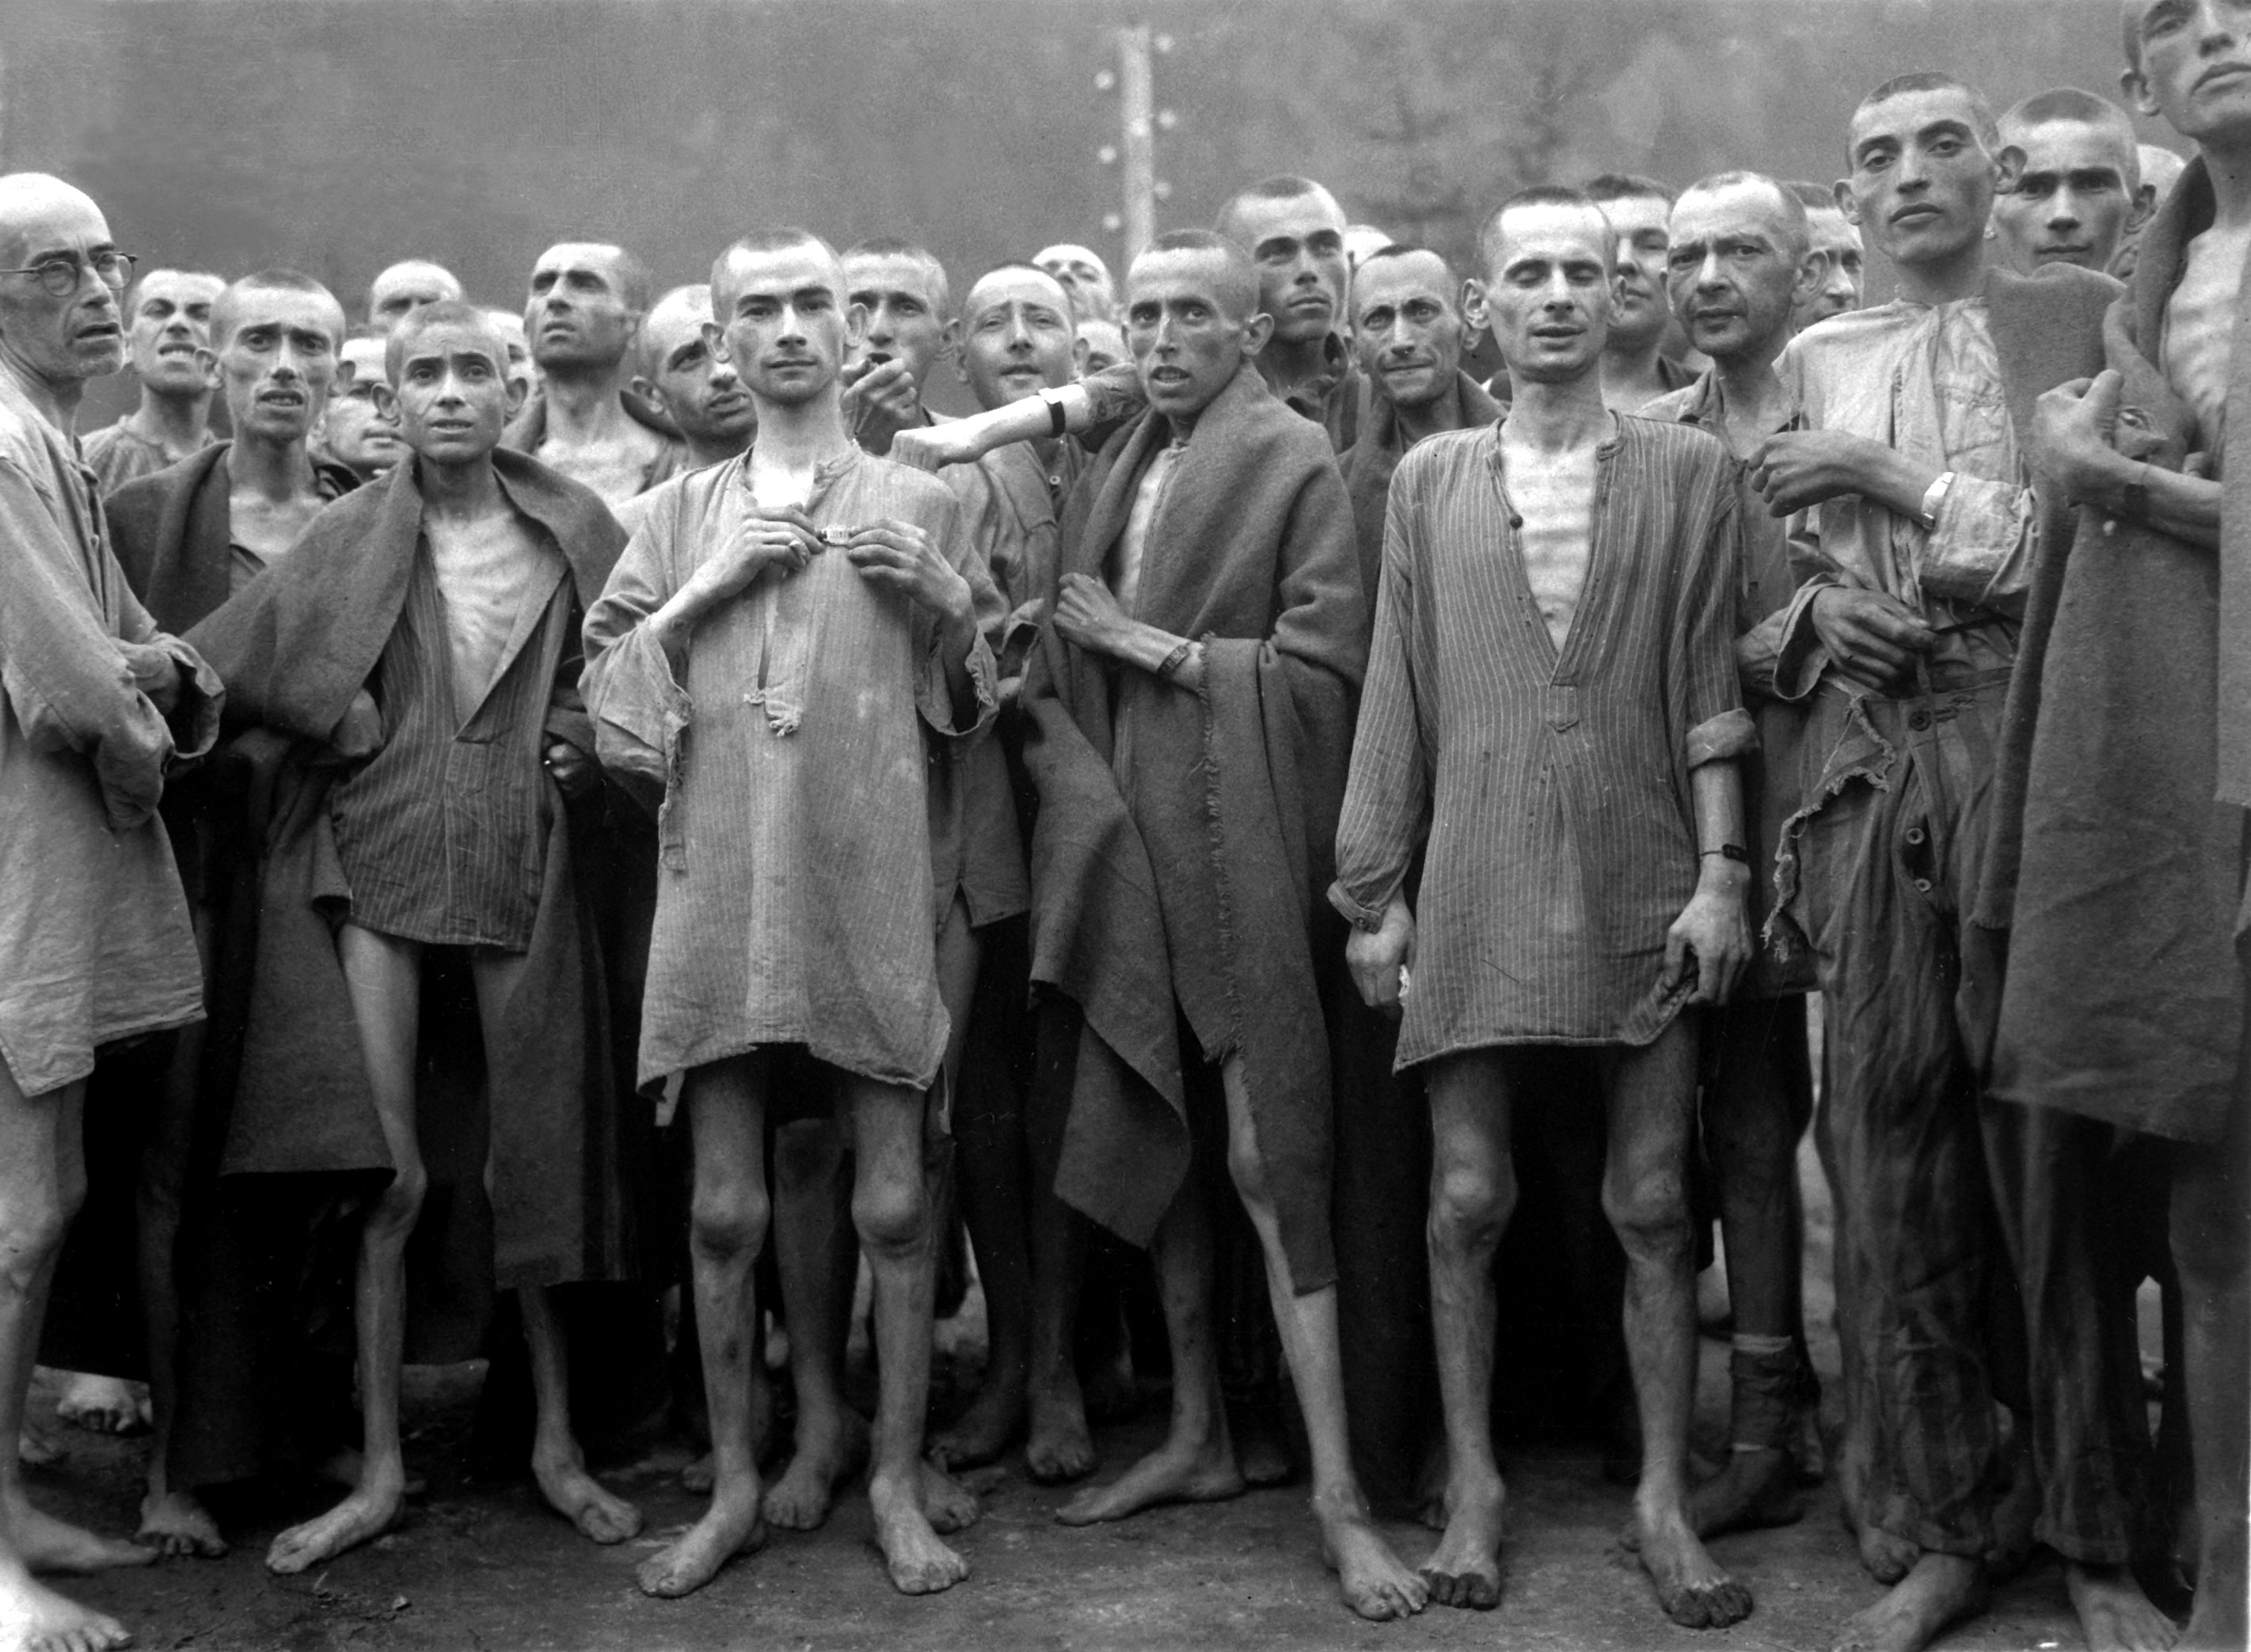 http://fr.academic.ru/pictures/frwiki/69/Ebensee_concentration_camp_prisoners_1945.jpg